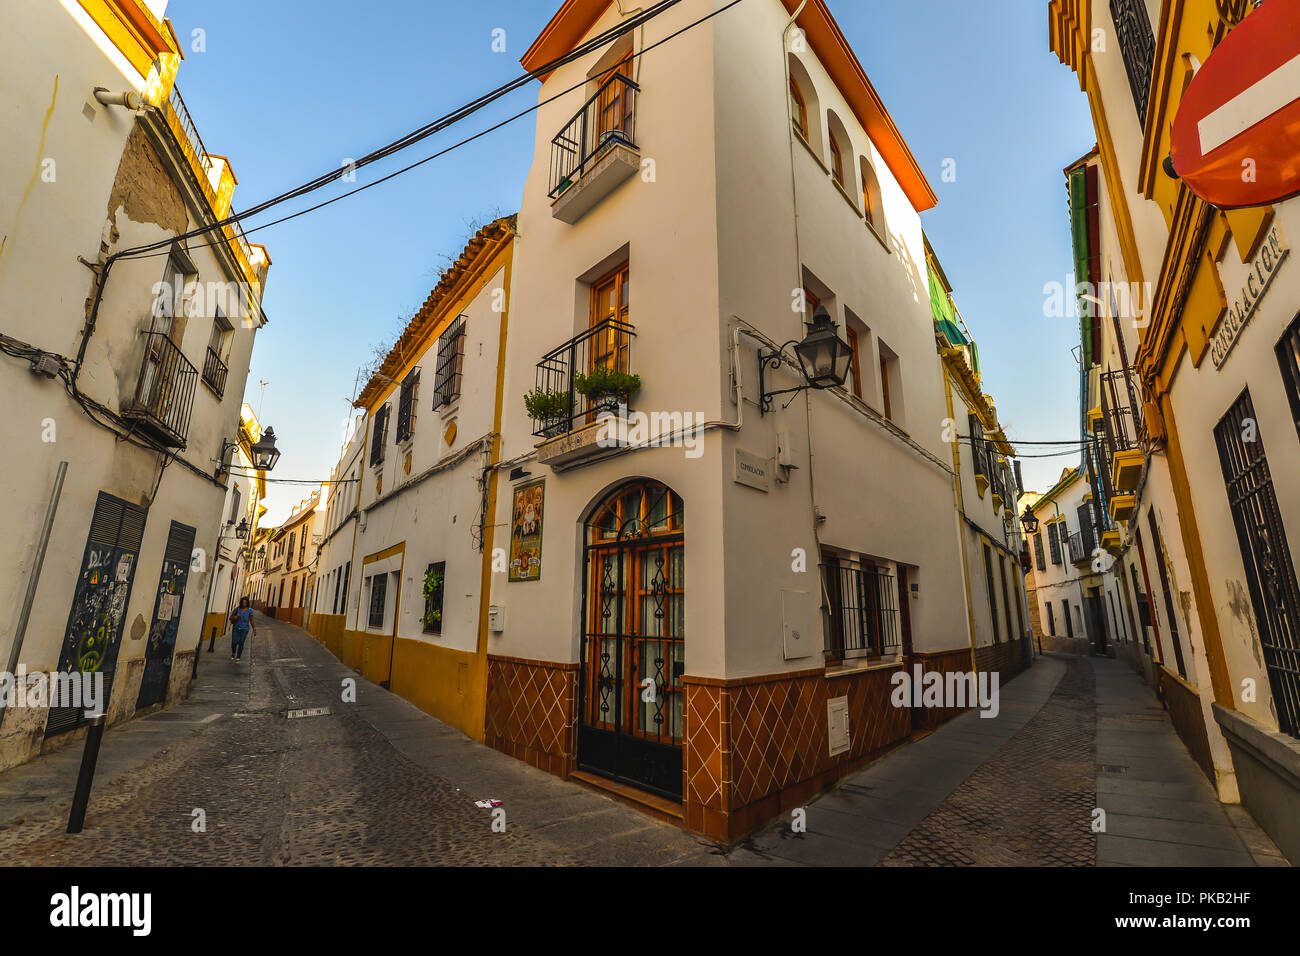 The streets of Cordoba - Andalucia, Spain - Stock Image